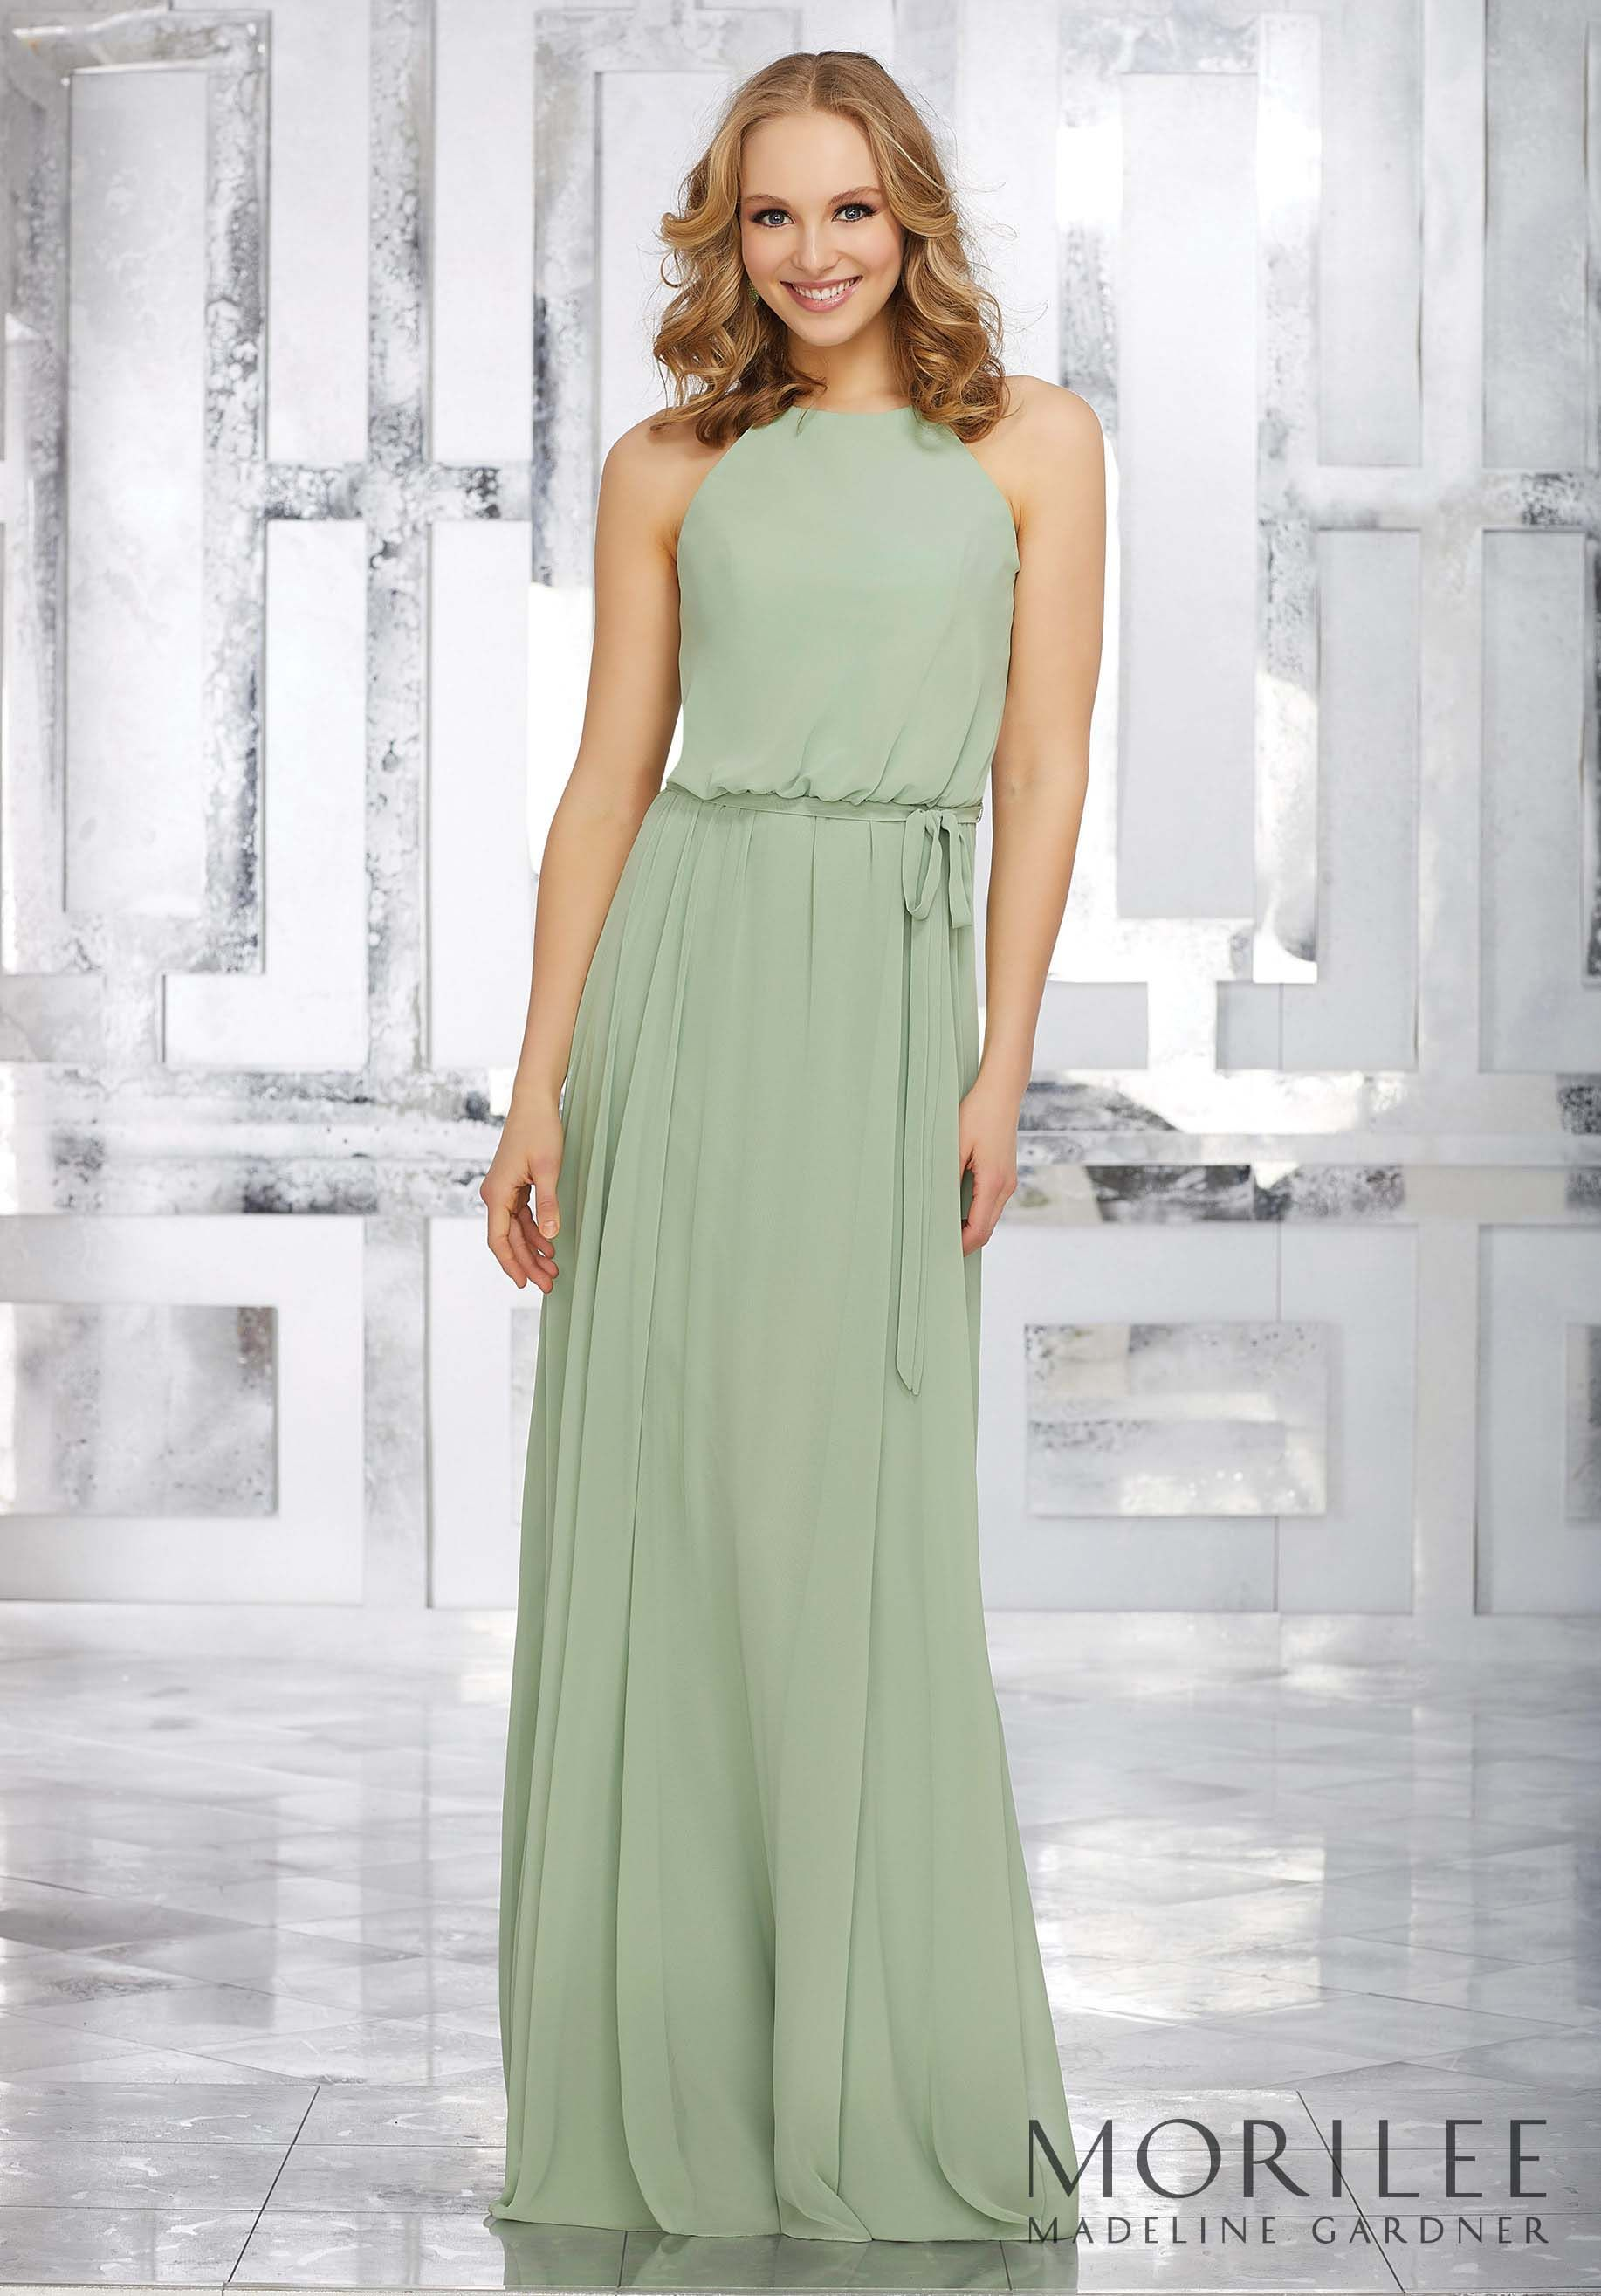 516059de1b695 Morilee | Madeline Gardner, style 21543. Feminine and Chic, this Long Flowy  Chiffon